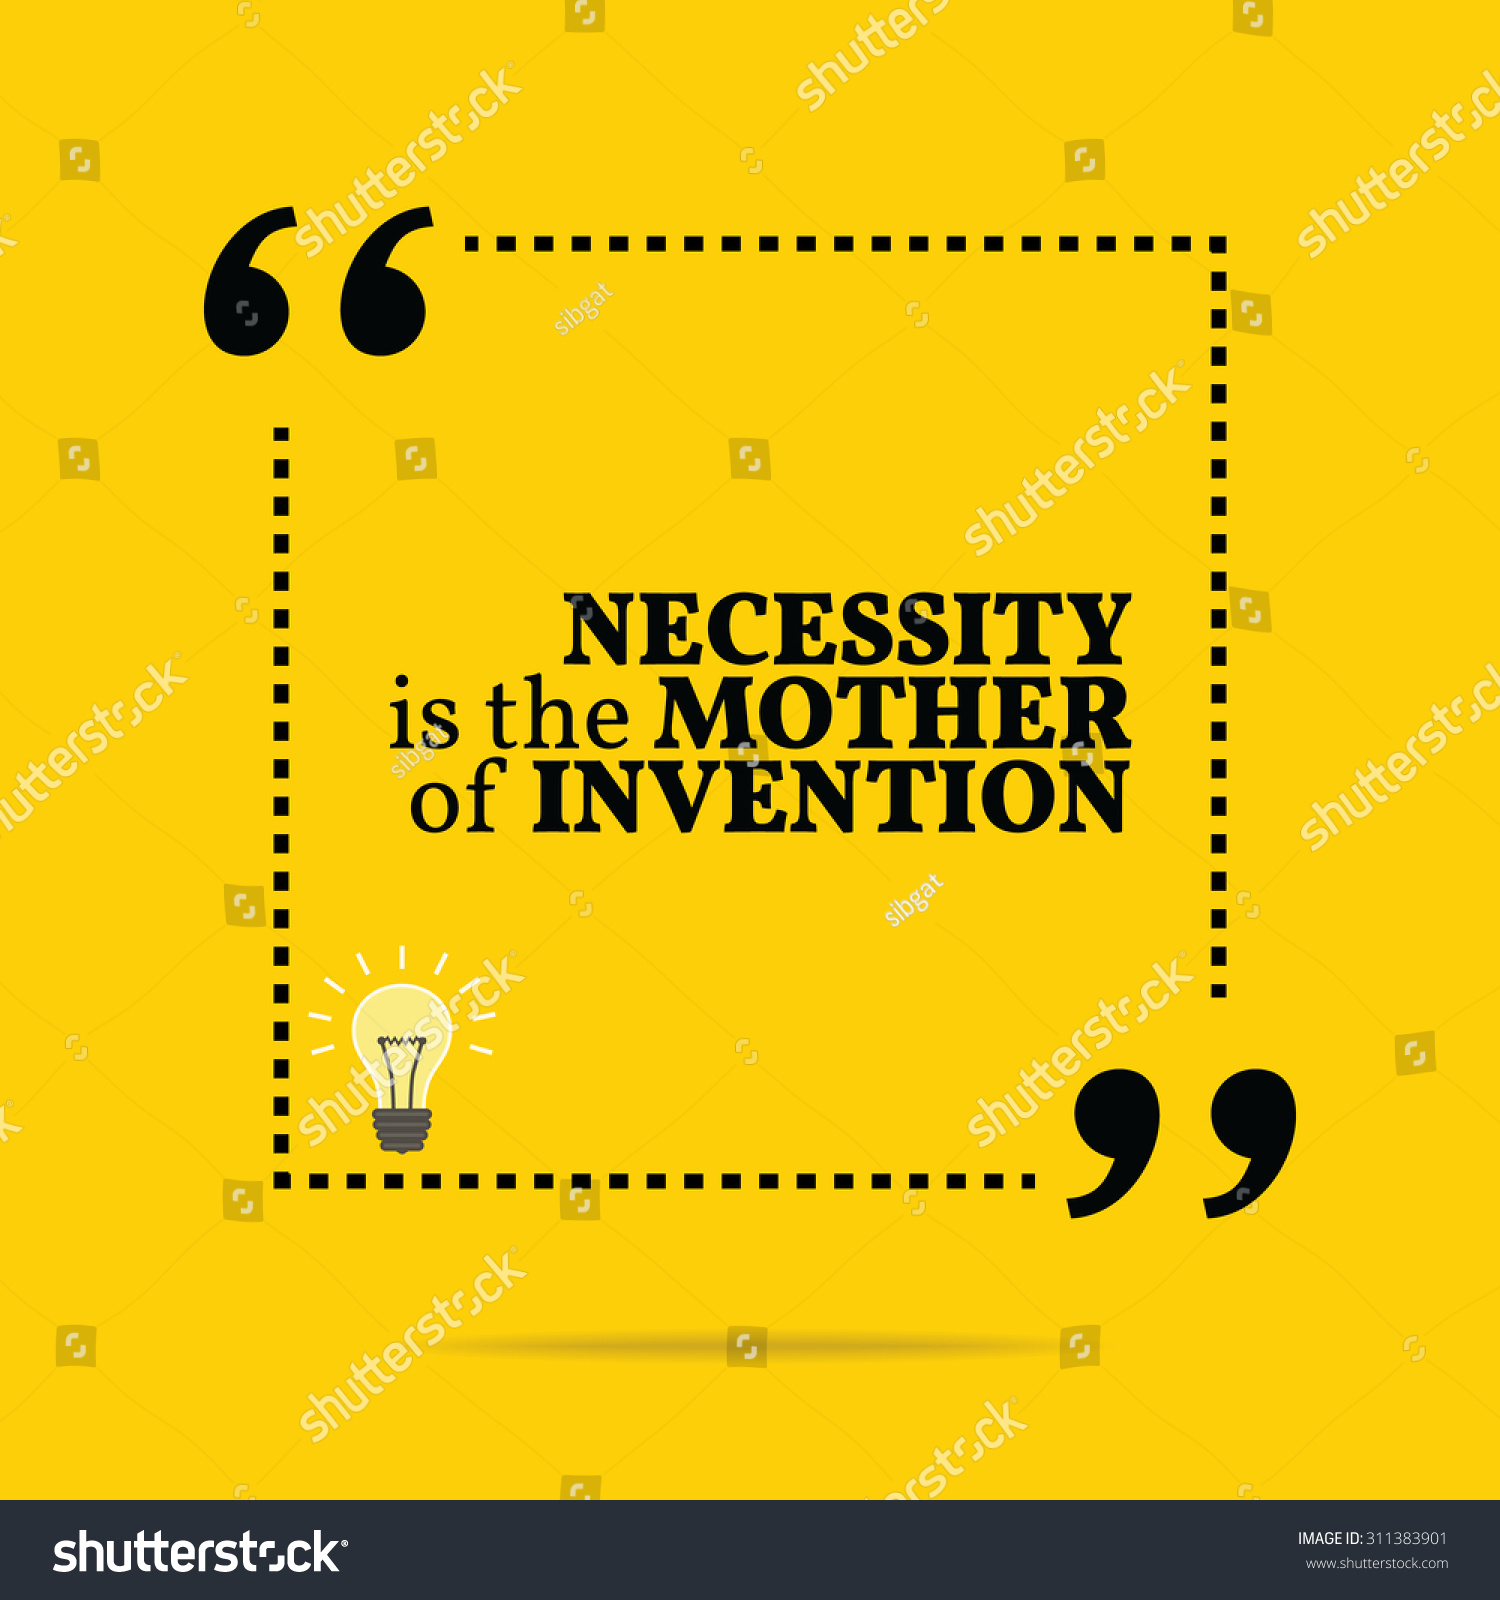 necessity is mother of invention It has been rightly said that necessity is the mother of inventions most of the inventions and discoveries owe their successful operation to necessity unless there is want we cannot struggle to attain the goal.